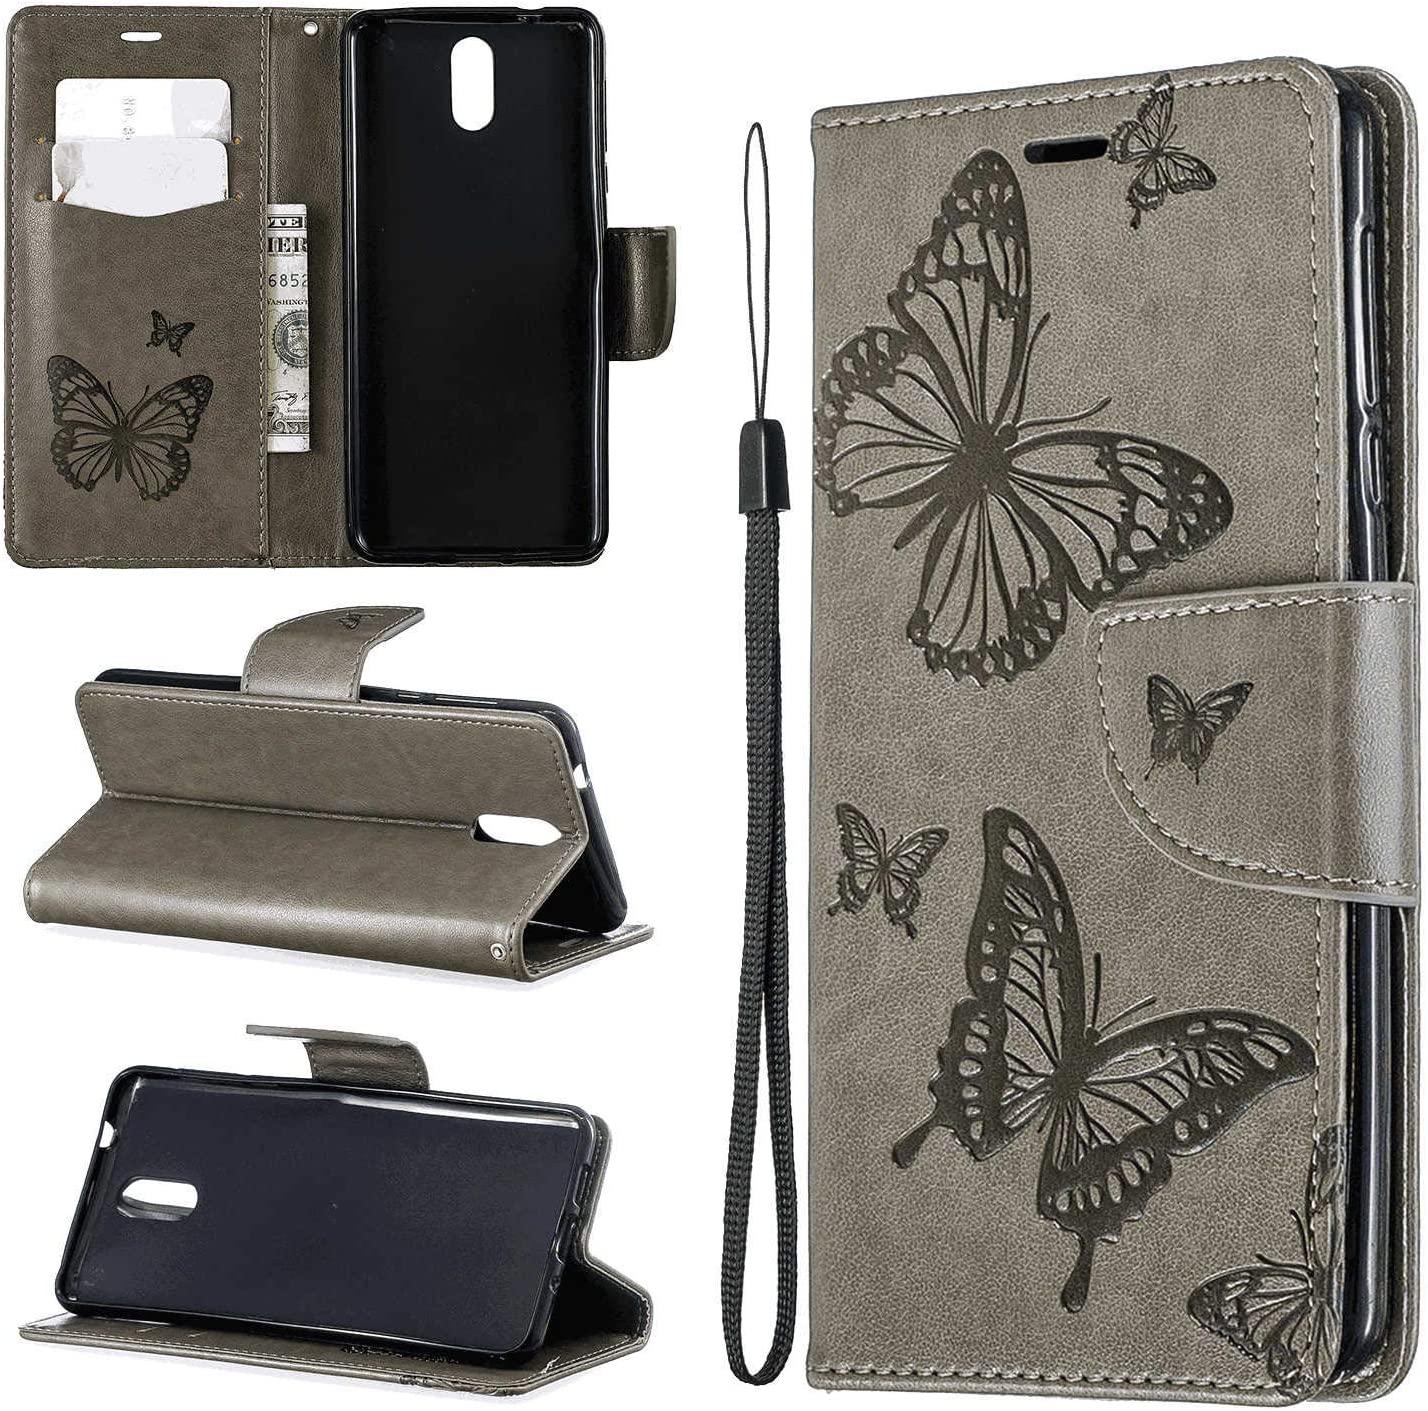 Leather Cover Business Gifts Wallet with Extra Waterproof Underwater Case Flip Case for iPhone XR